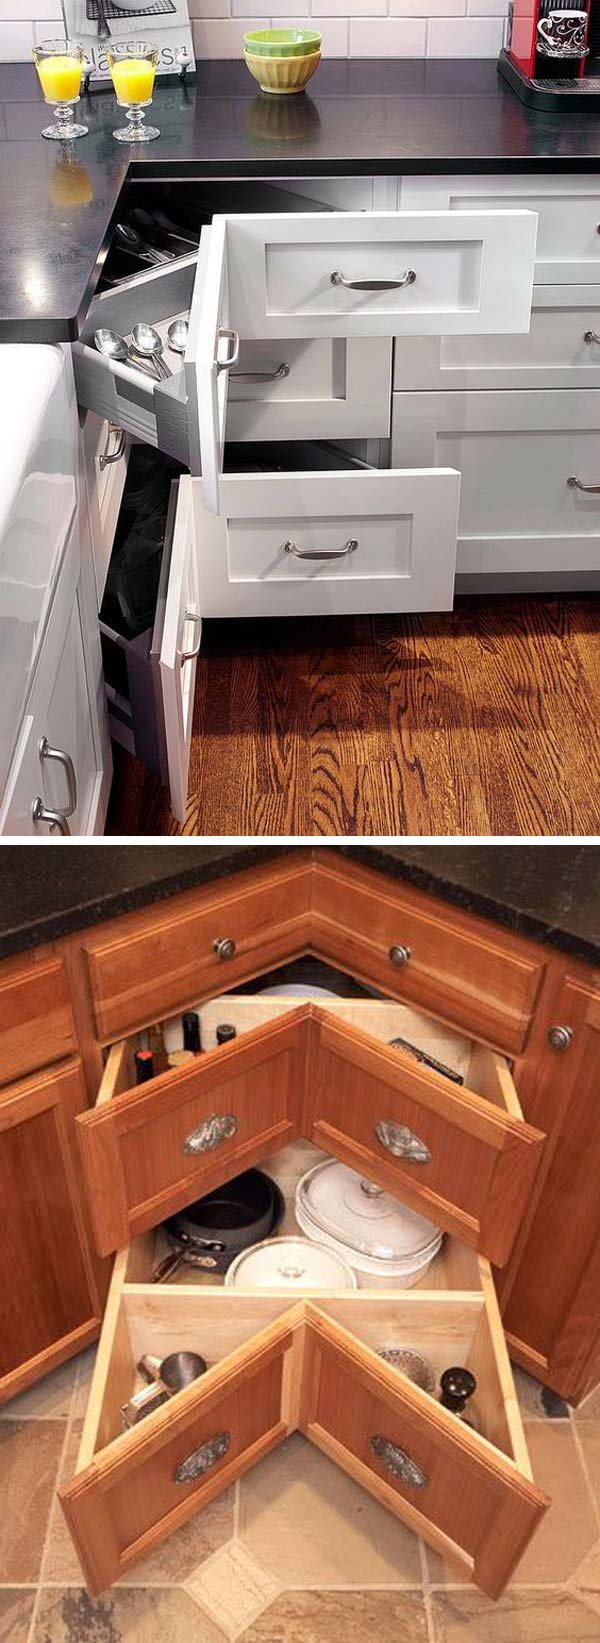 Superbe A 45 Degree Angled Stack Of Drawers Work Well In Awkward Kitchen Spaces  Like Corner Cabinets: